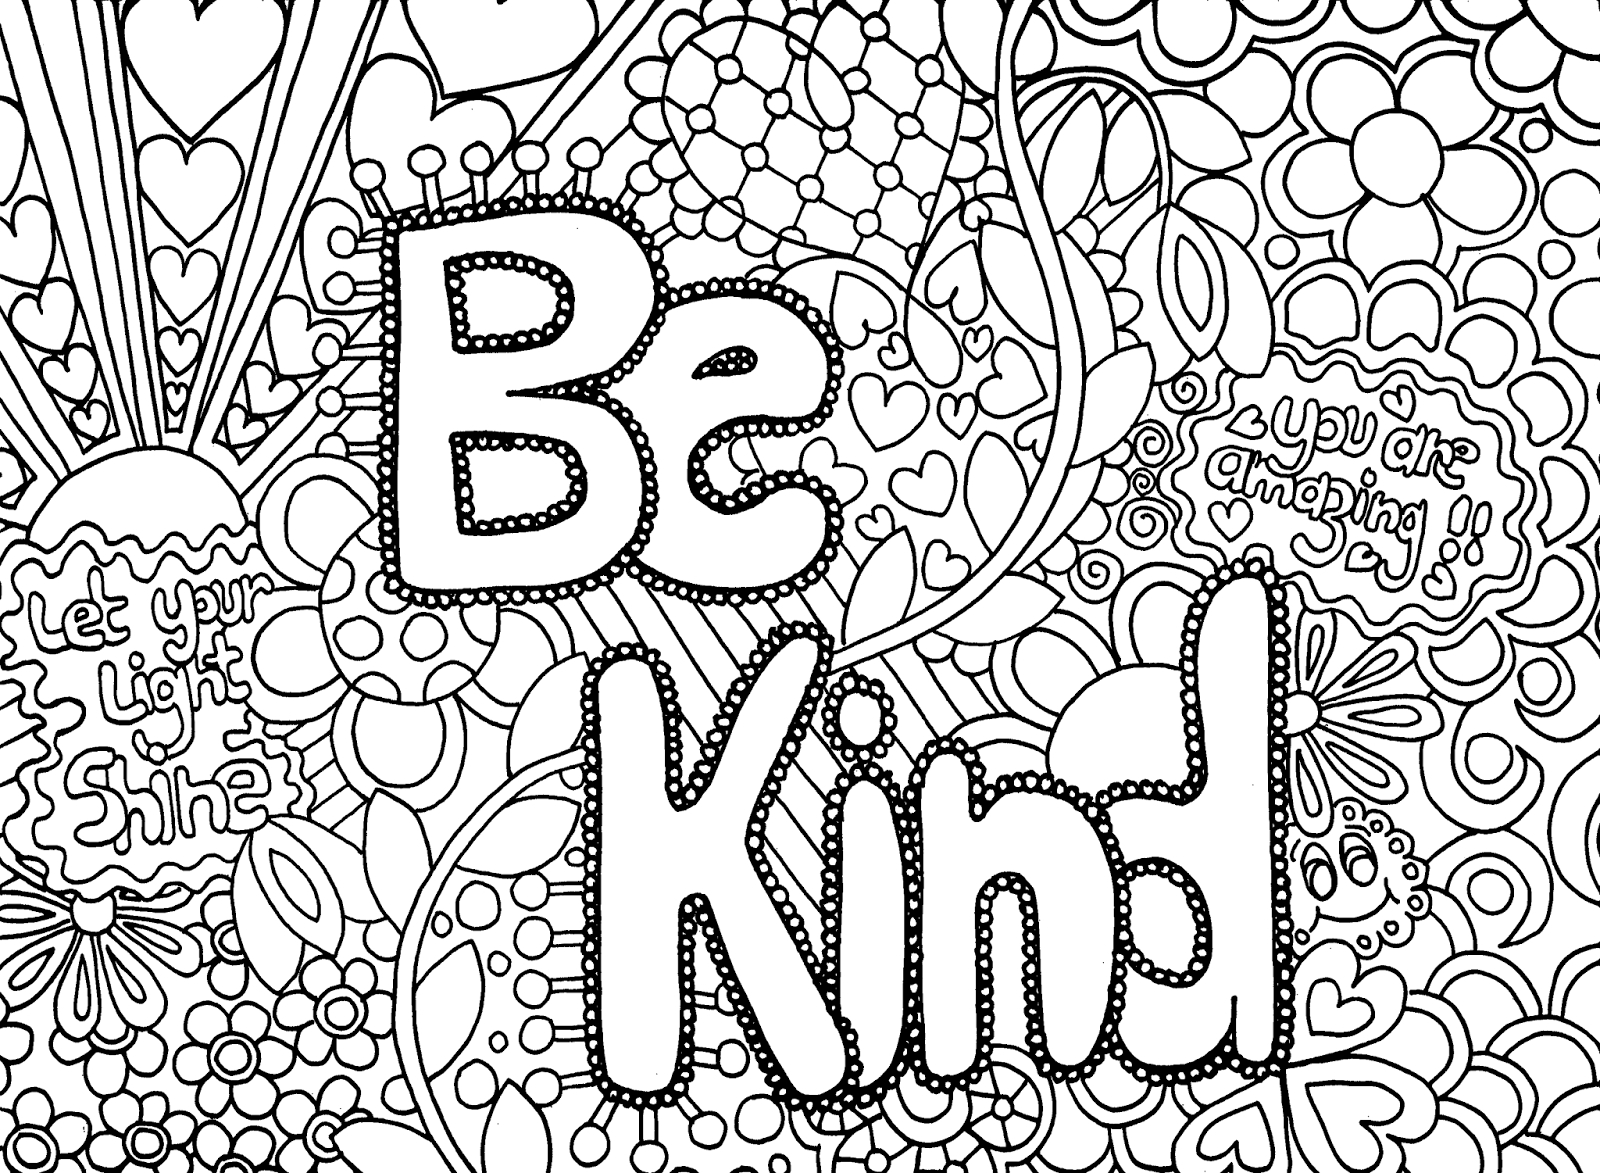 Free Coloring Pages For Adults Printable Hard To Color | Printable - Free Printable Hard Coloring Pages For Adults